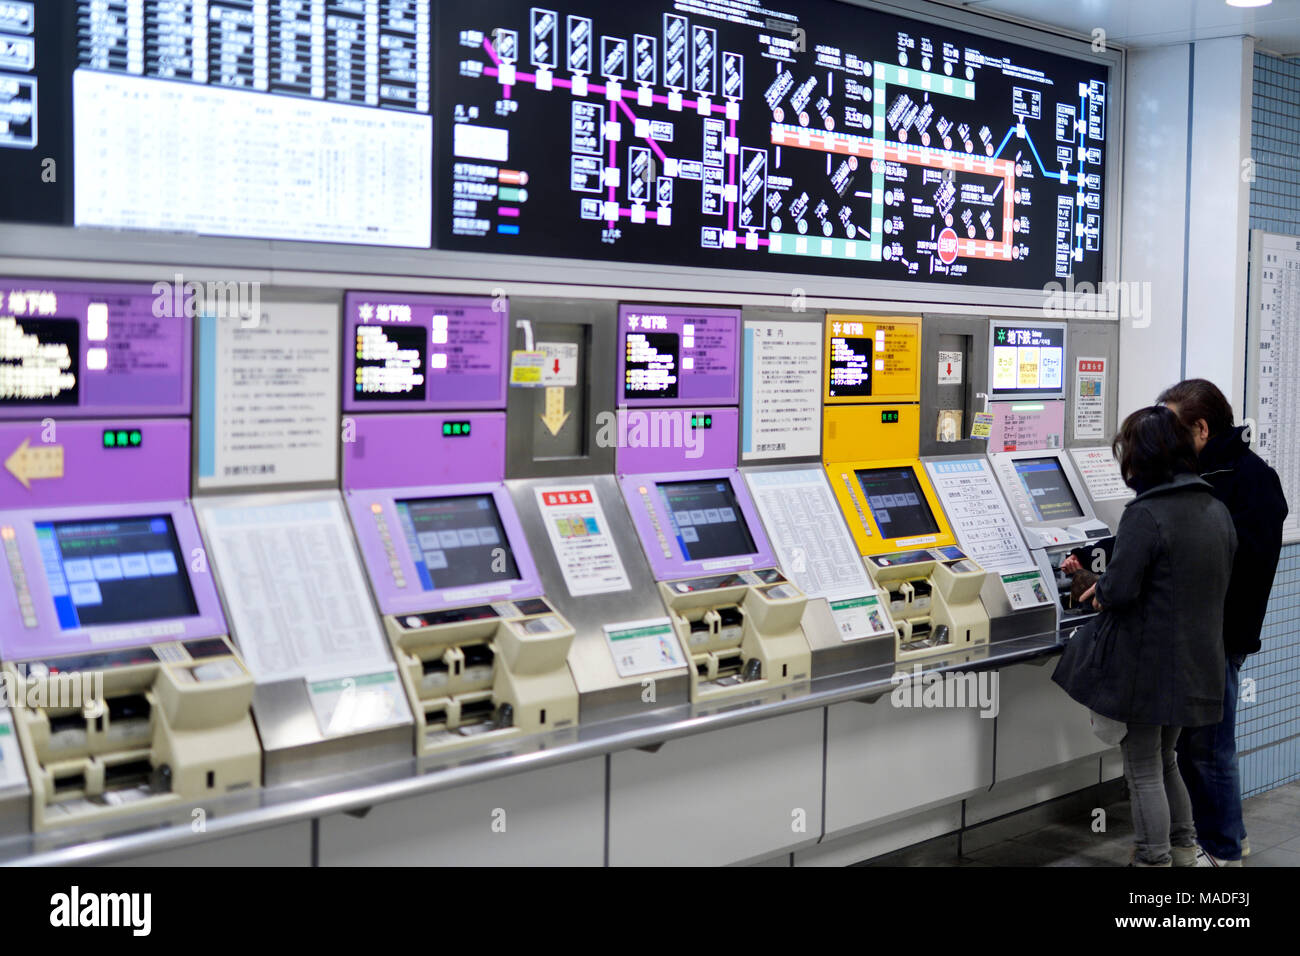 People buying train tickets from a subway station ticket machine, vending kiosk at a train station in Kyoto, Japan 2017 Stock Photo